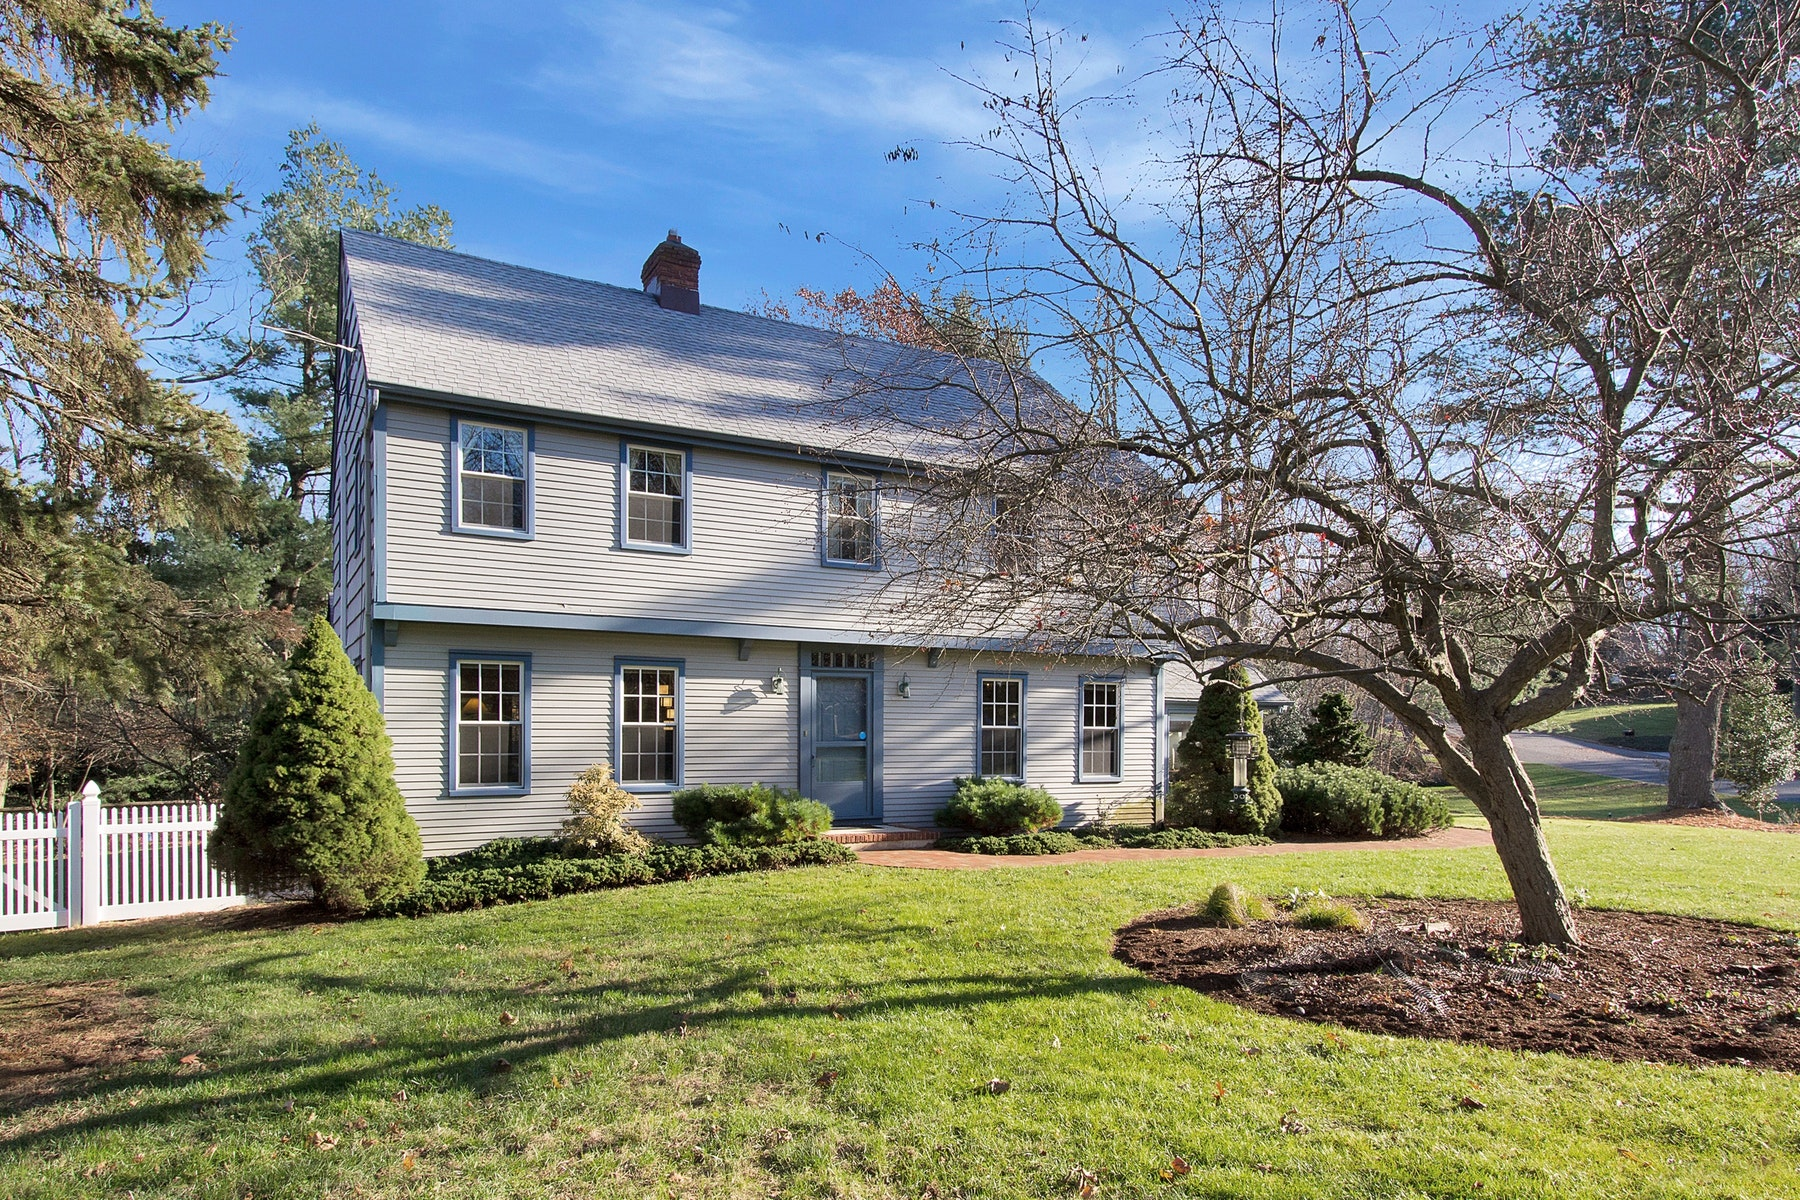 واحد منزل الأسرة للـ Sale في Traditional Colonial 13 Dana Lane, Colts Neck, New Jersey, 07722 United States